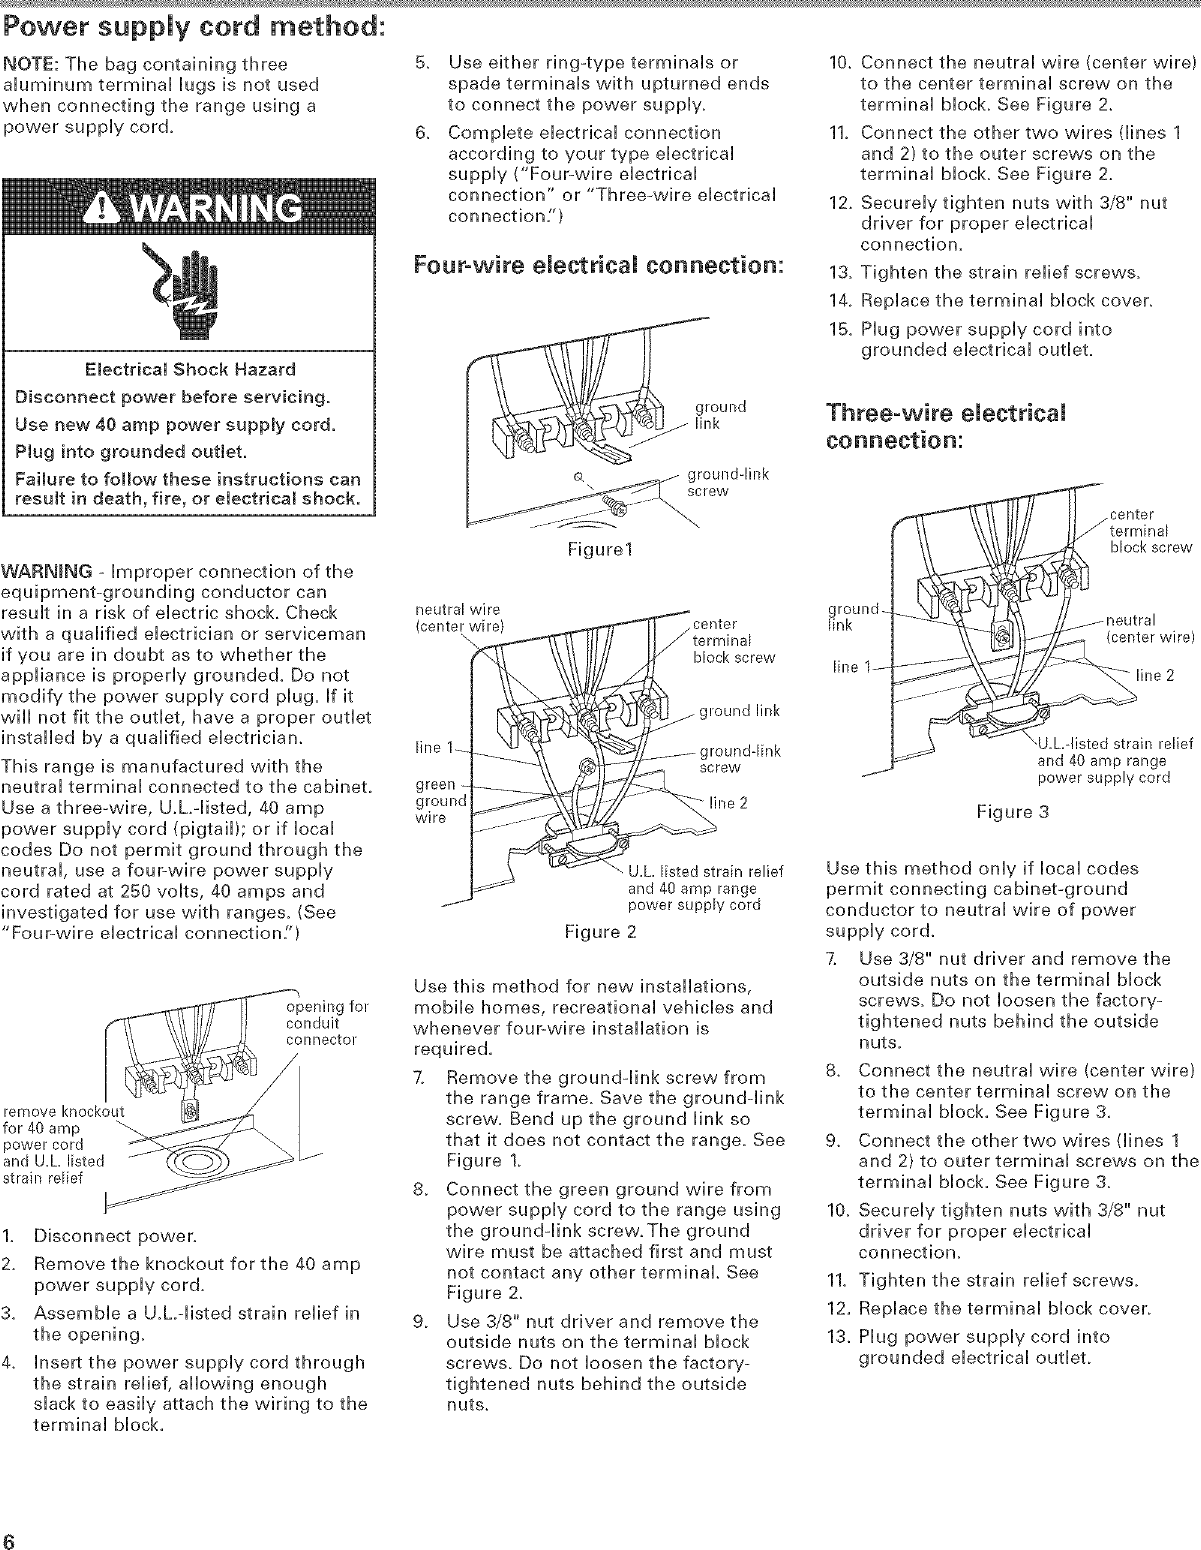 Kitchenaid Kesc308lss0 User Manual In Range Electric Manuals And Wiring Outlet Page 6 Of 12